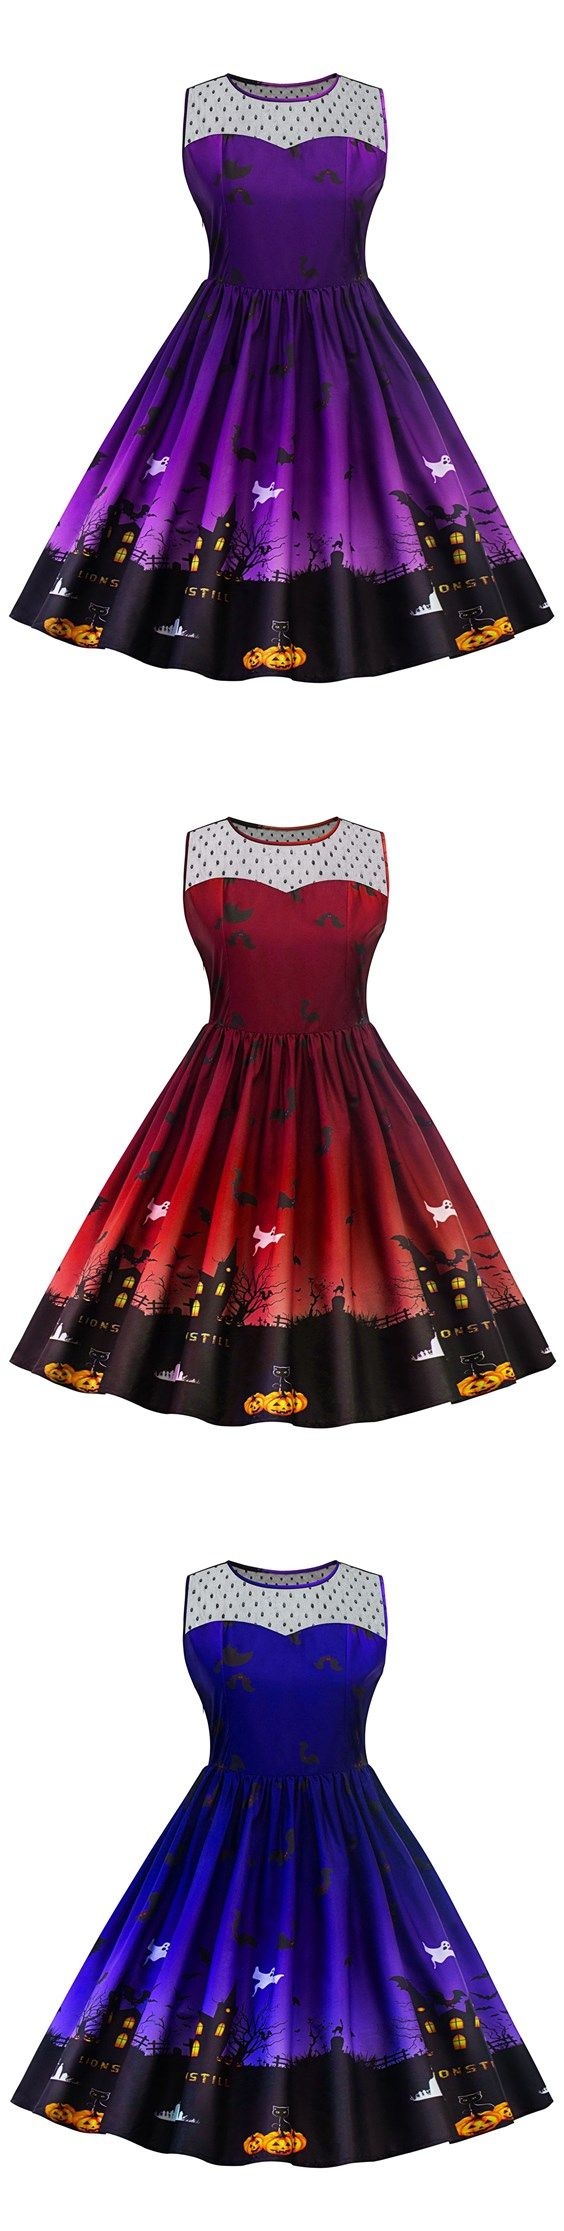 Lace Panel Halloween Plus Size Dress